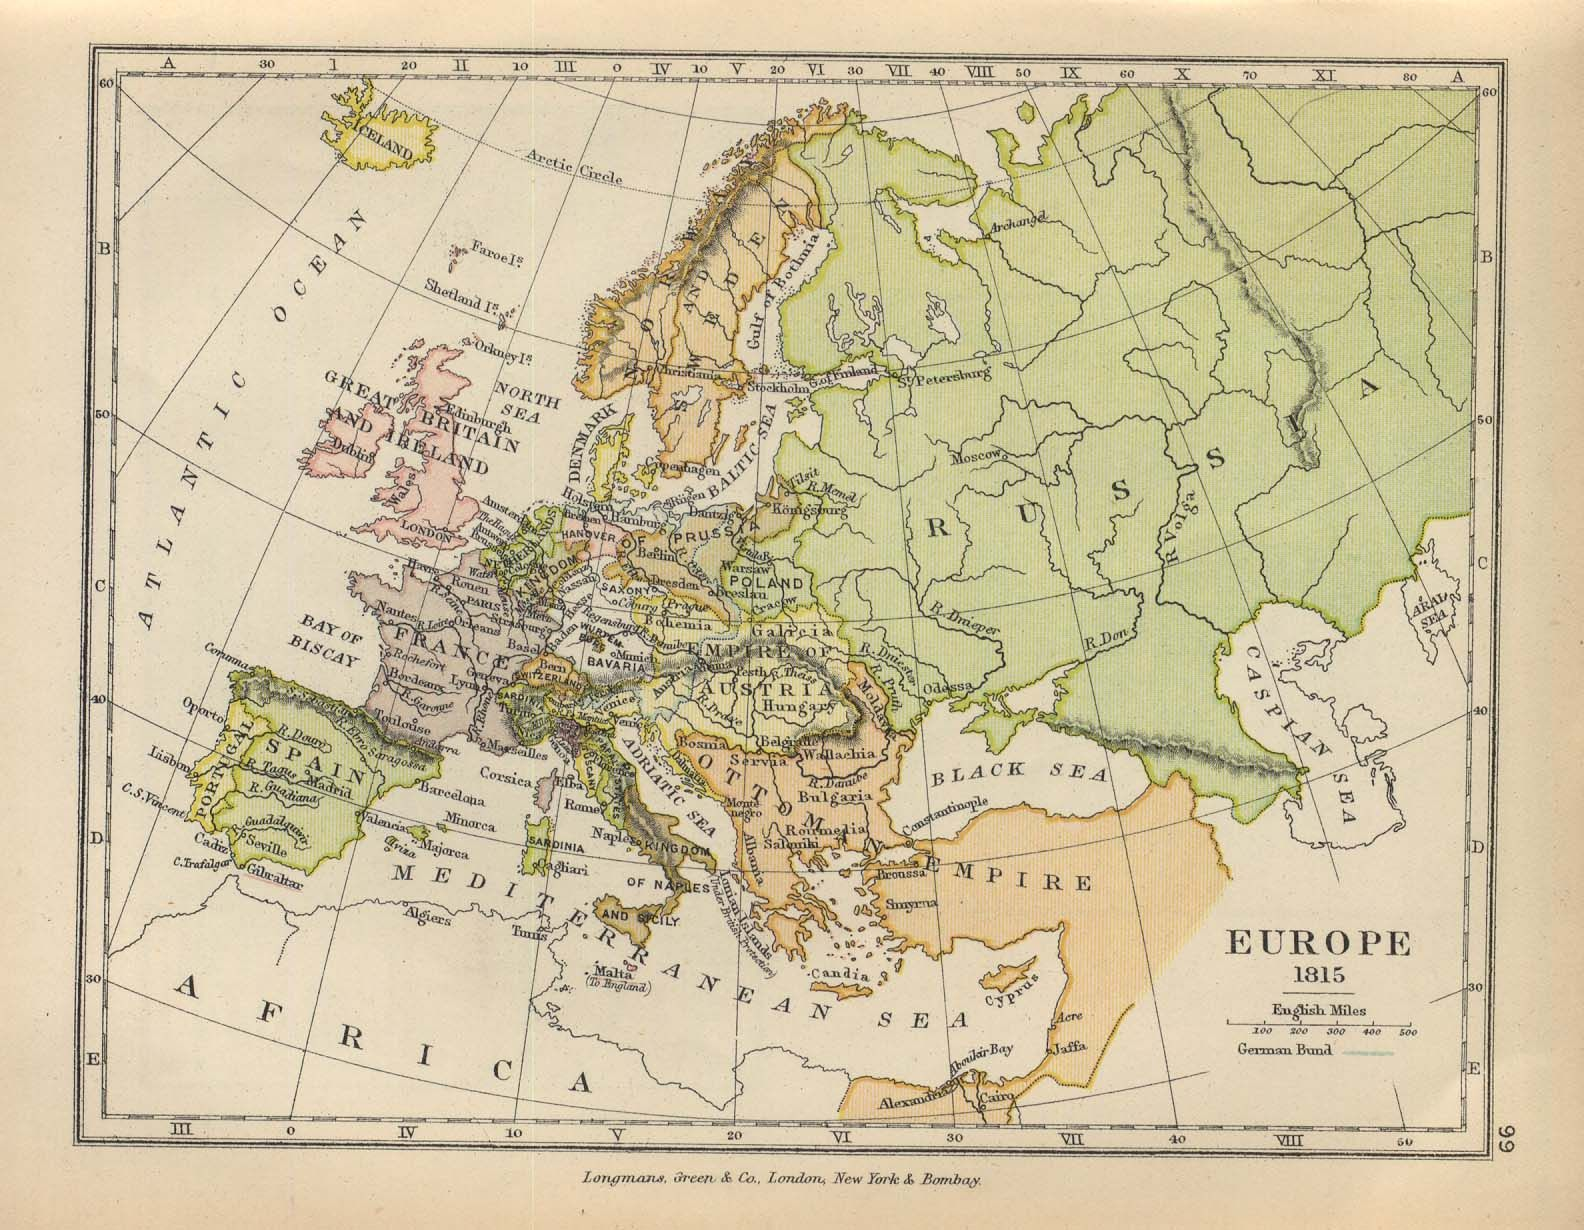 Map Of Europe Russia Middle East%0A Europe  by Charles Colbeck from The Public Schools Historical Atlas